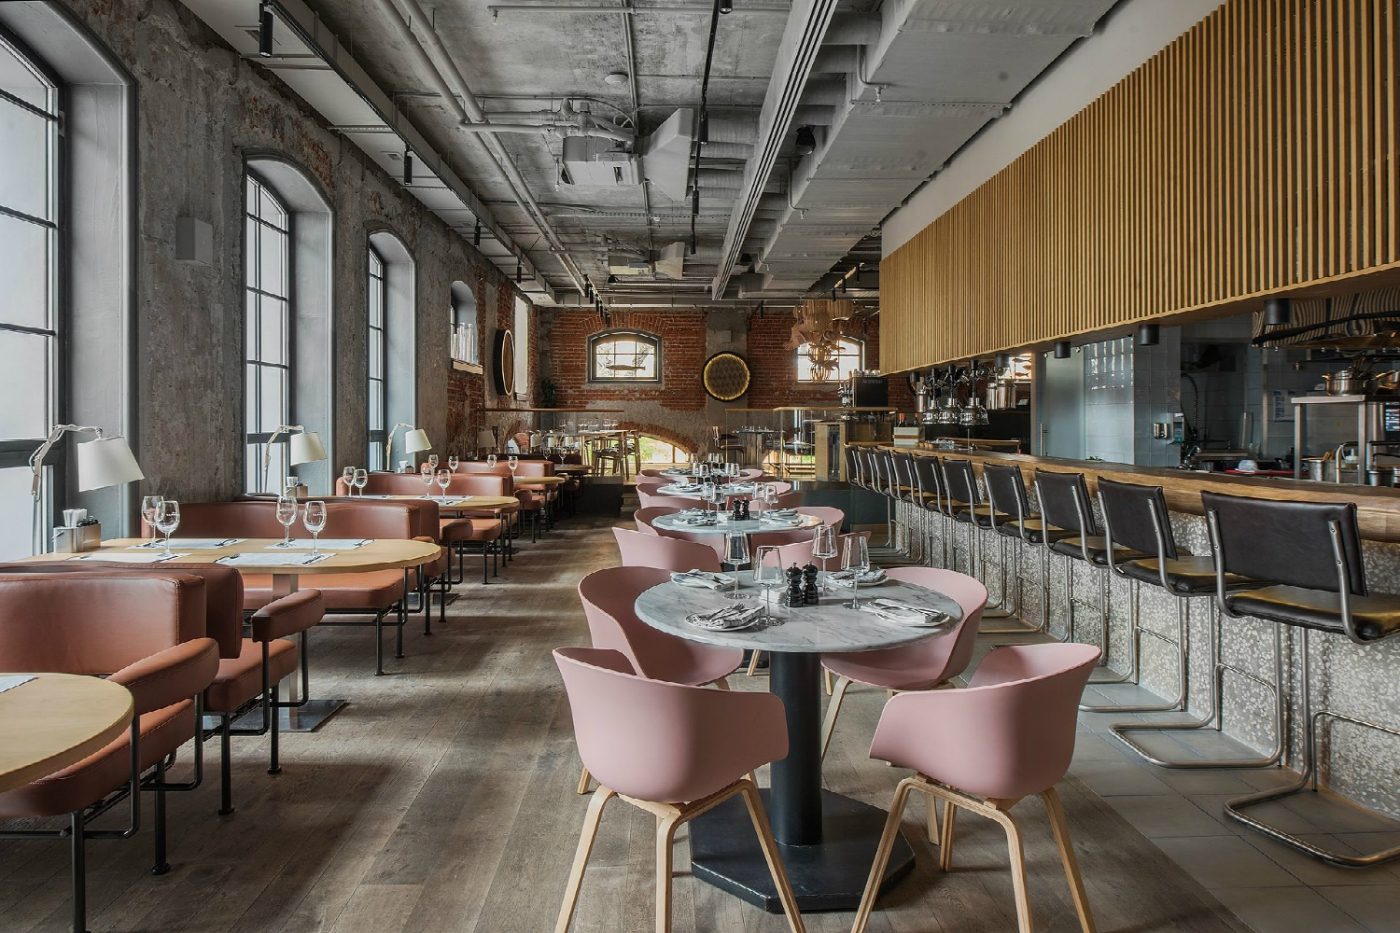 archpoint Kombinat Restaurant – A Project With Marine Influences by ARCHPOINT Featured Kombinat Restaurant A Project With Marine Influences by ARCHPOINT 1 1400x933